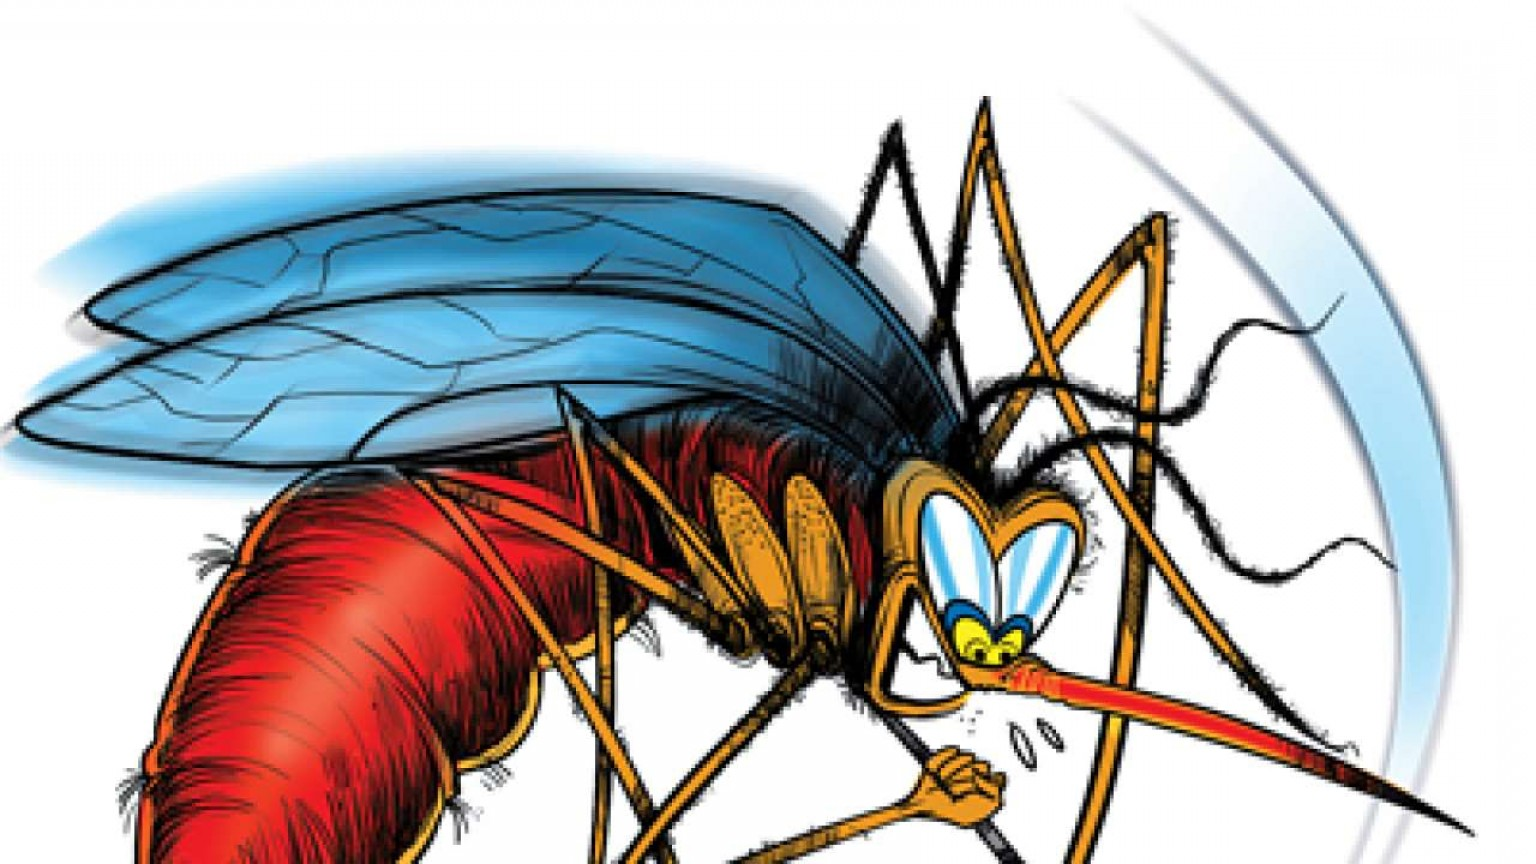 Vector-Borne Infection: Report Bbmp Intensifies Vector Borne Disease Control Measures In City